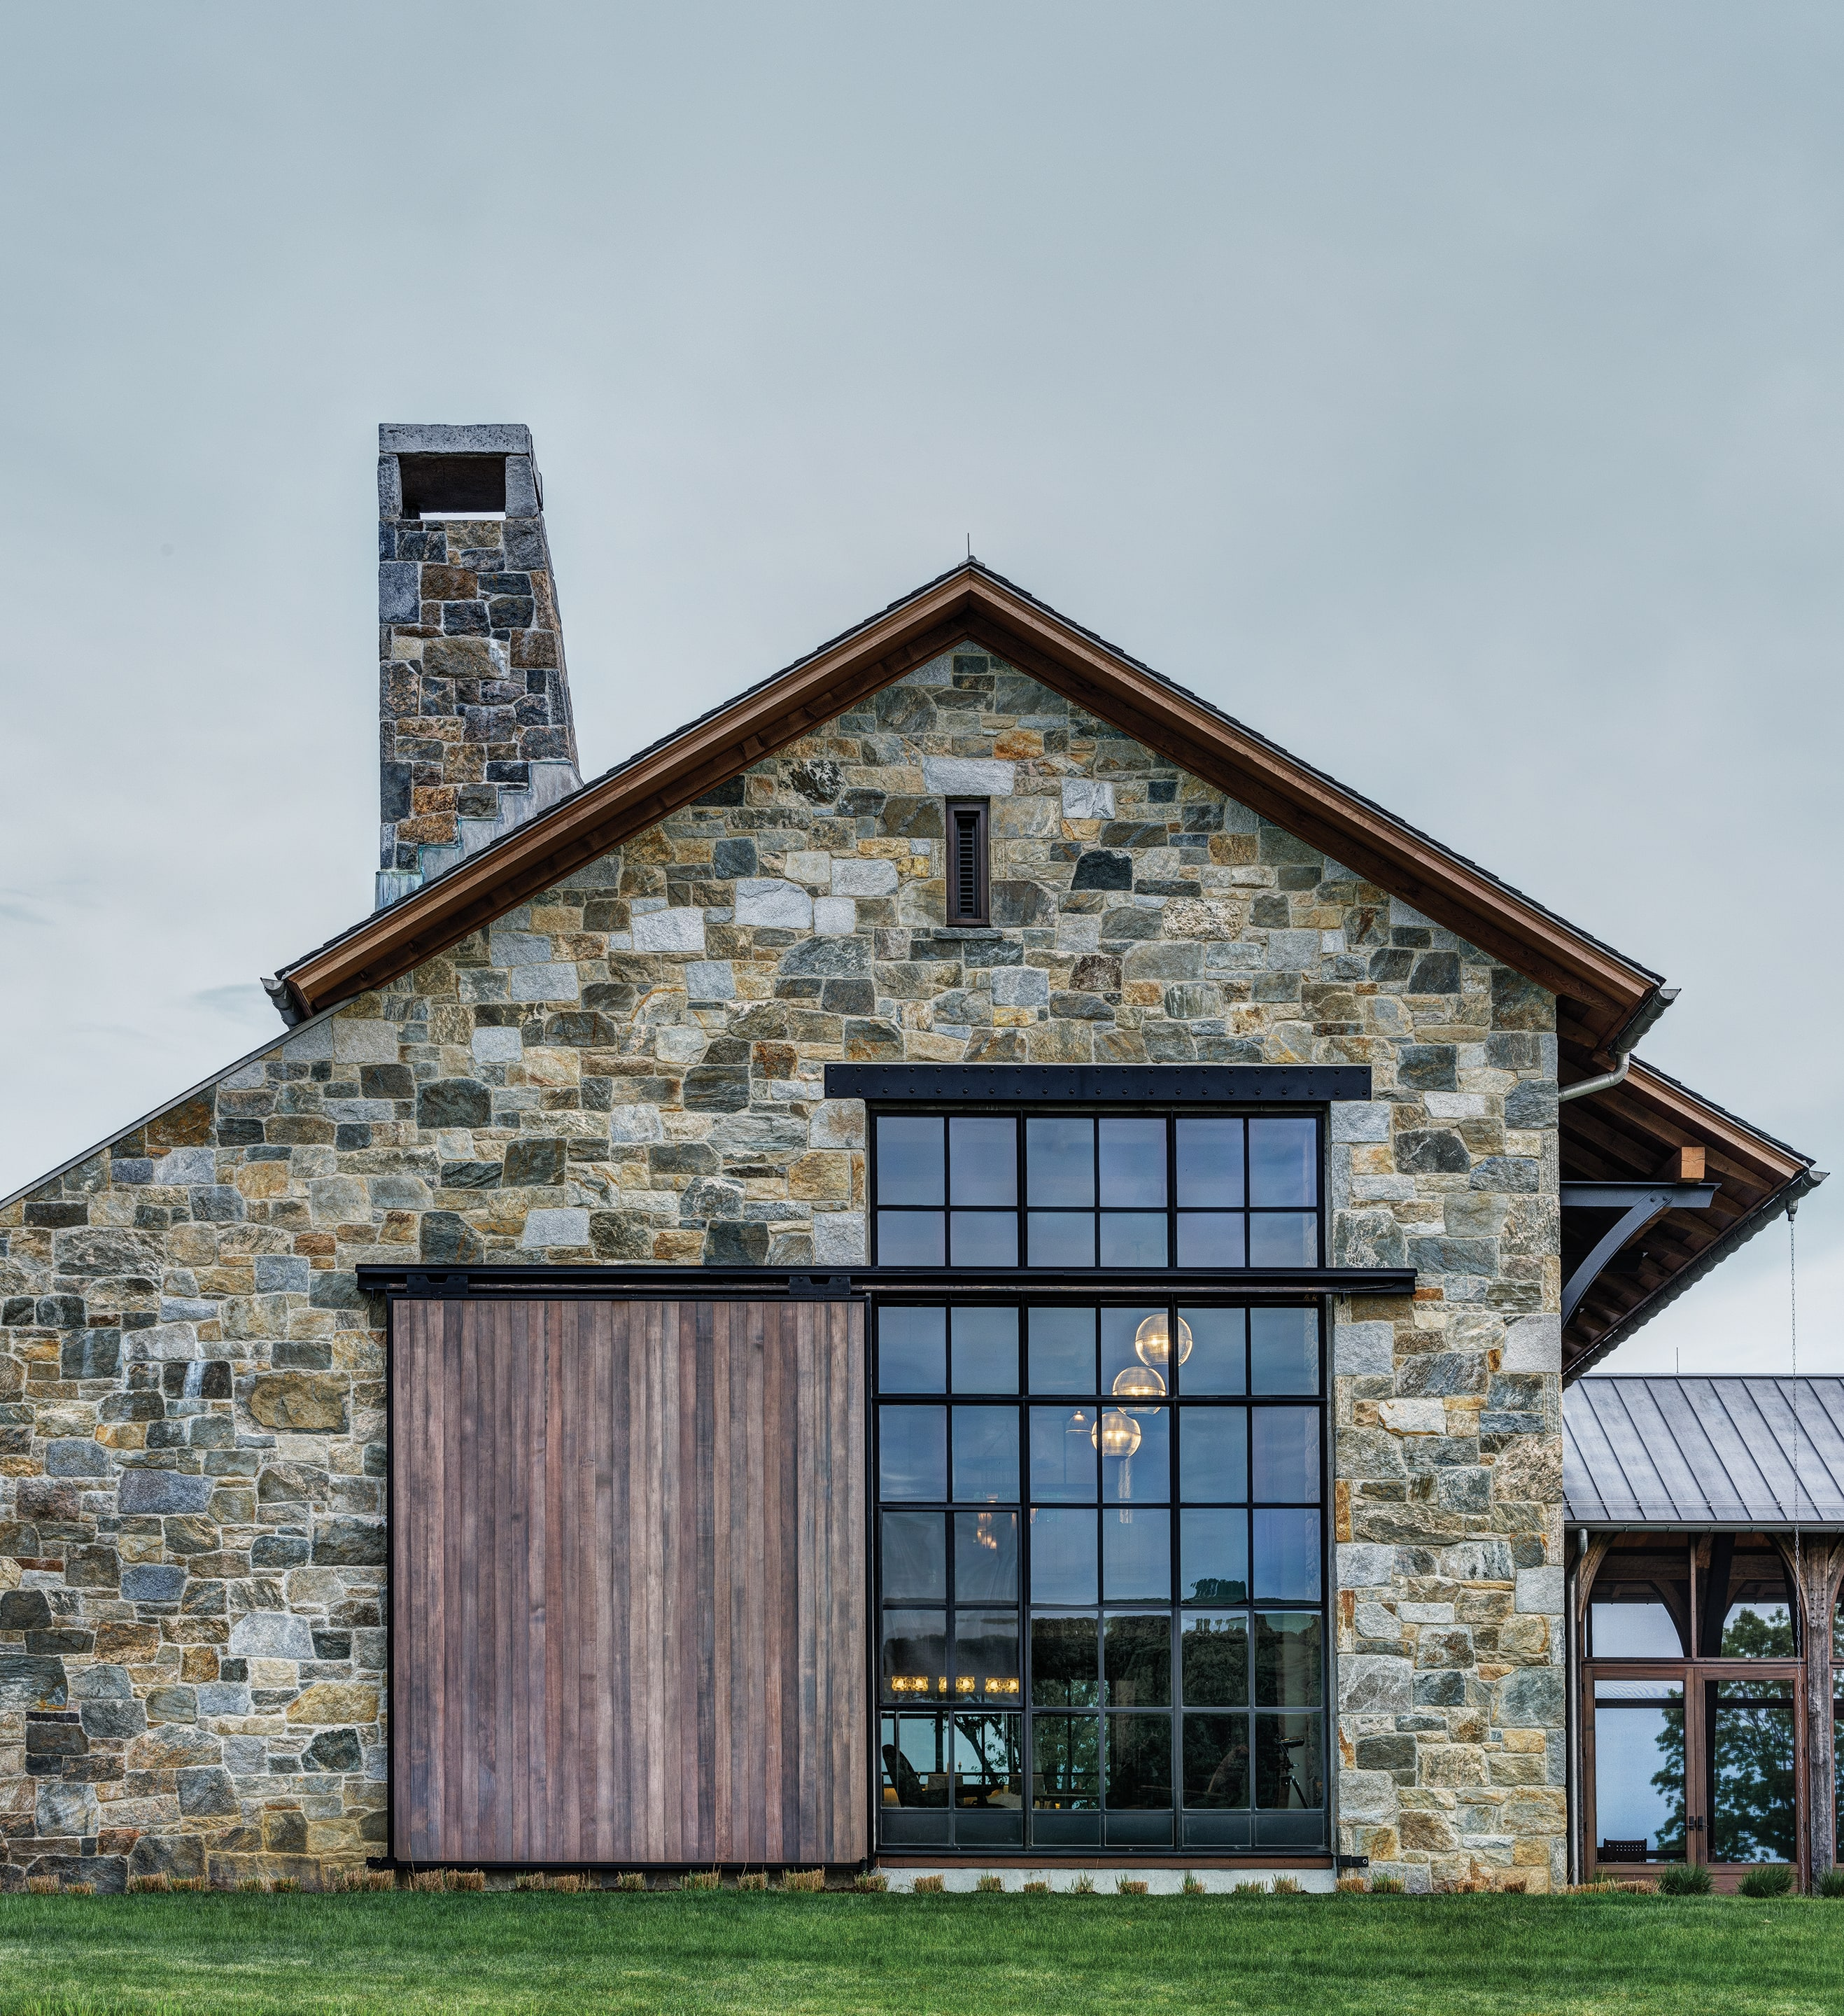 2018 Connecticut IDA Winner Reese Owen Architects